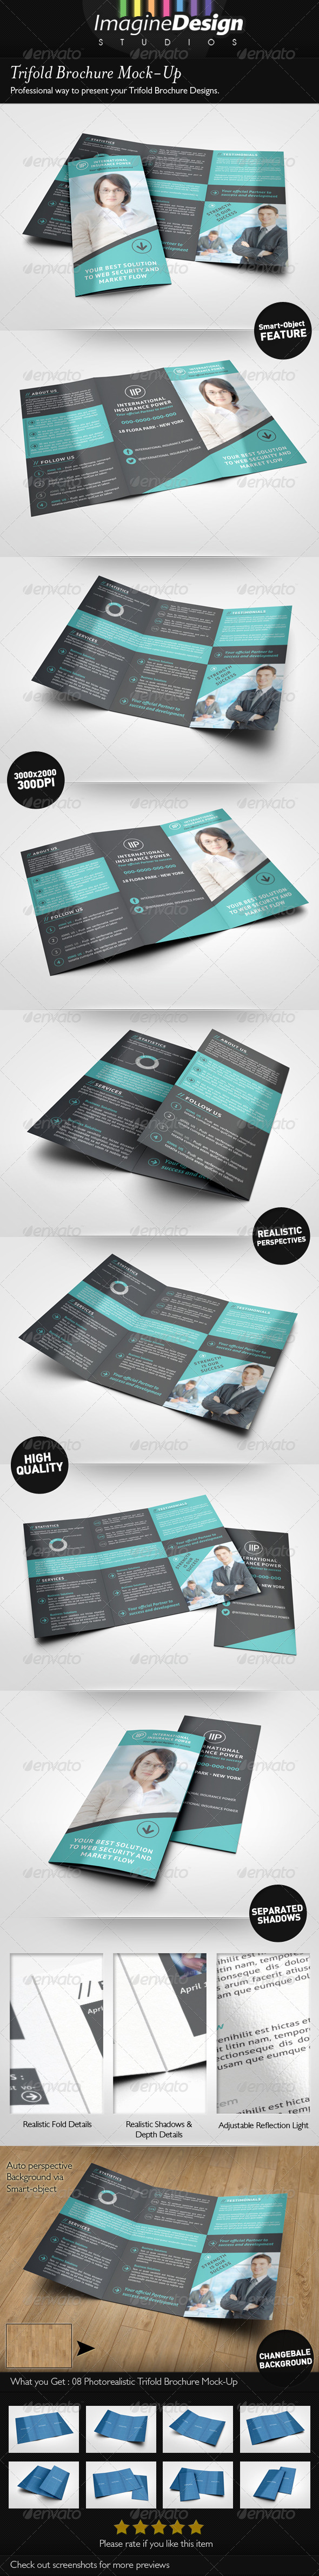 Trifold Brochure Mock-Up - Brochures Print